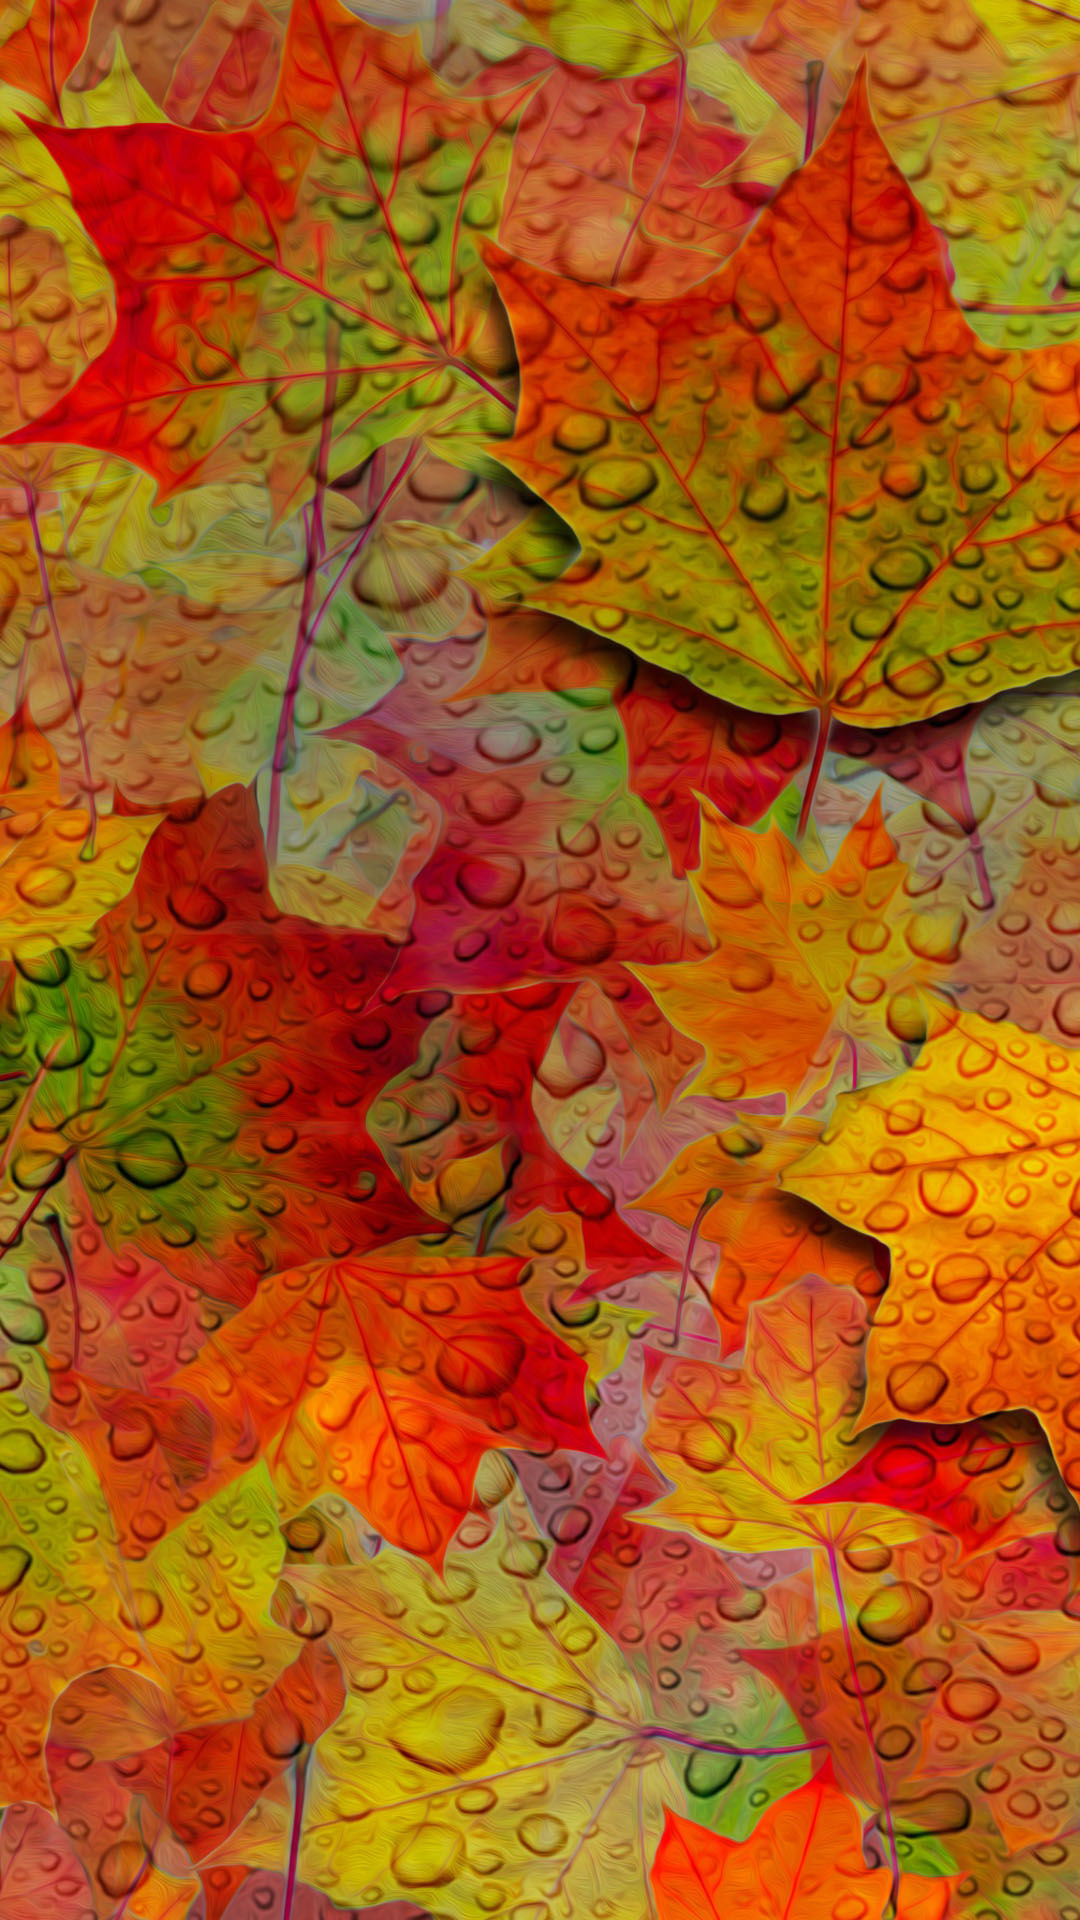 Free Download Fall Leaves Wallpaper Iphone Wallpapers